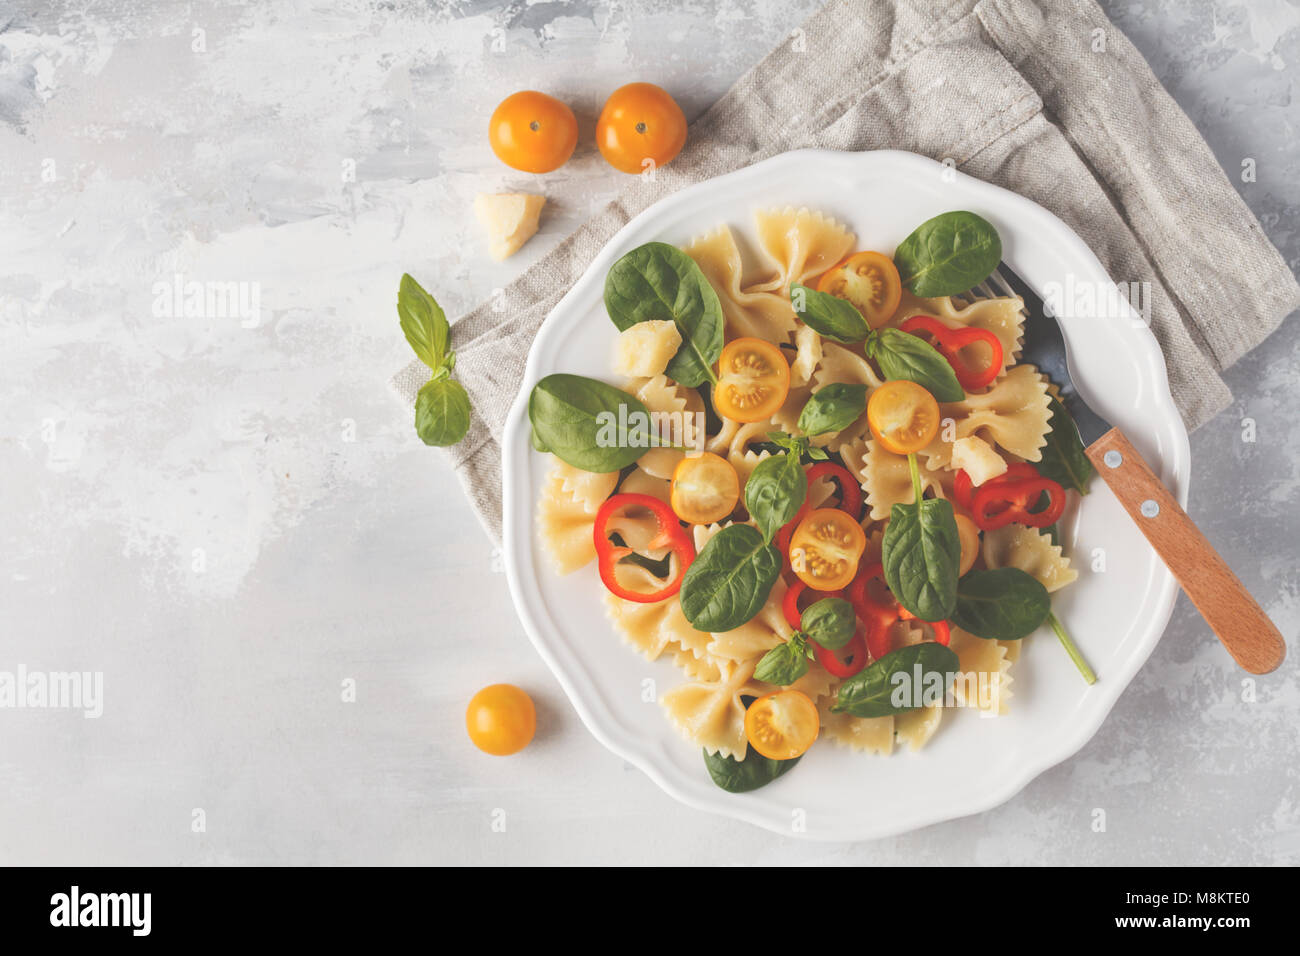 Italian pasta farfalle salad with vegetables, basil and spinach in a white plate. Light background - Stock Image